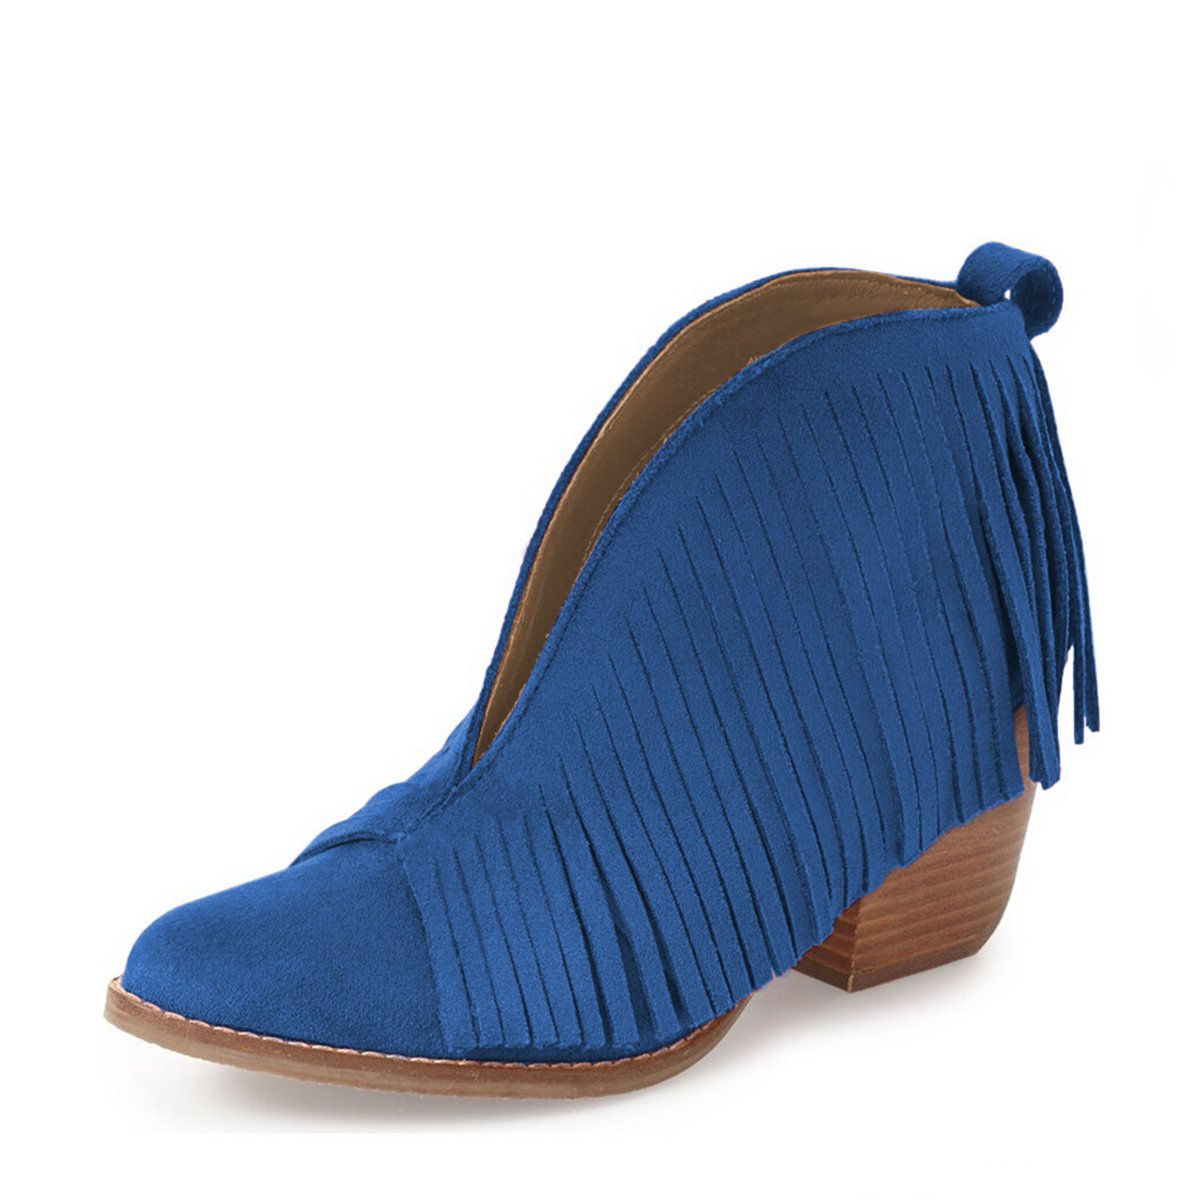 YDN Western Ankle High Boots with Tassels Round Toe Block Heel Suede Retro Booties B01KC2G4DW 6 B(M) US Blue